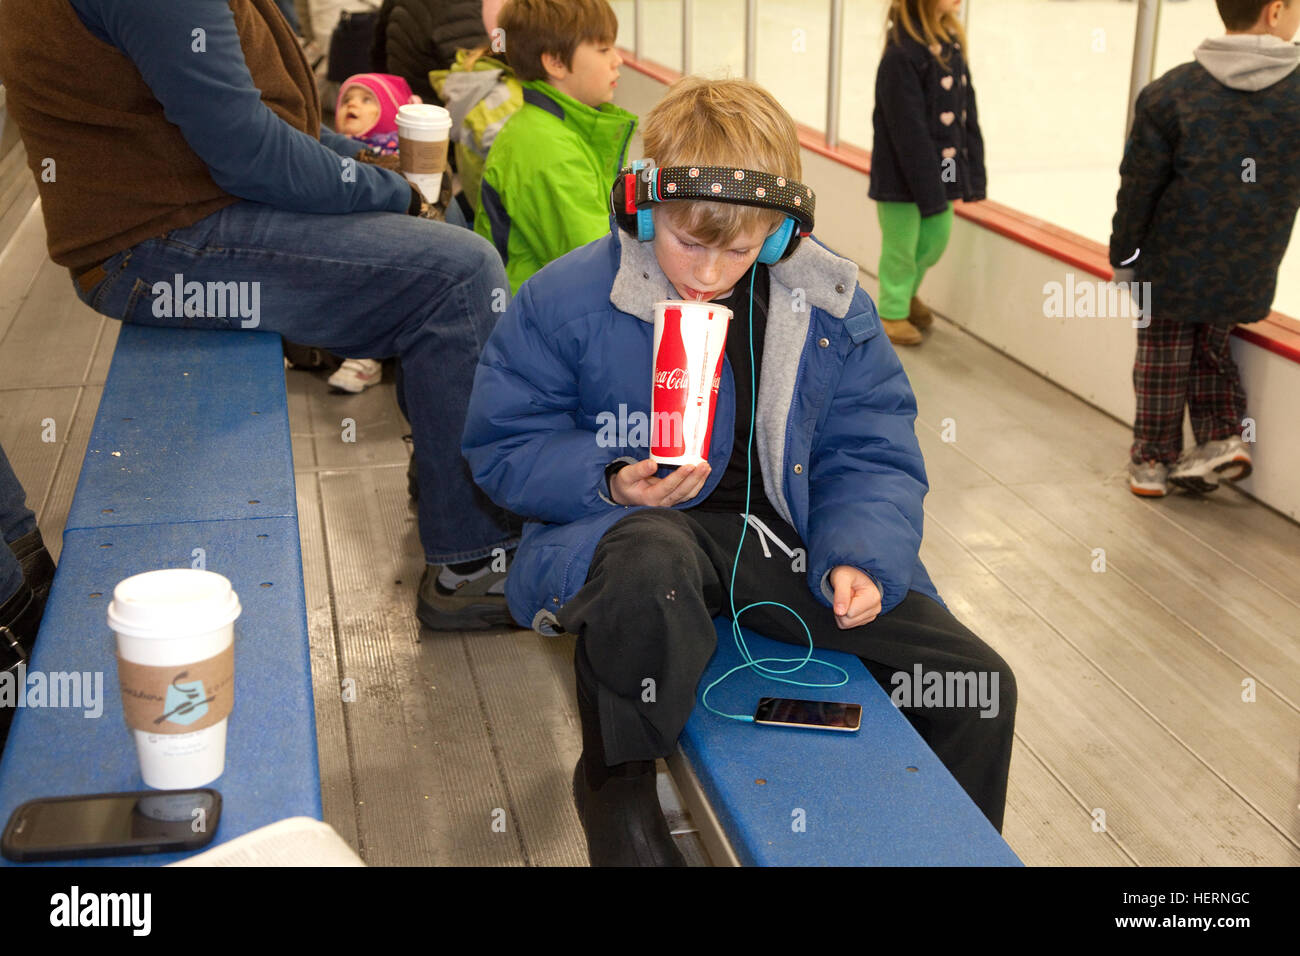 Boy age 10 sipping a large soda while listening to music from his cell phone through earphones. St Paul Minnesota - Stock Image